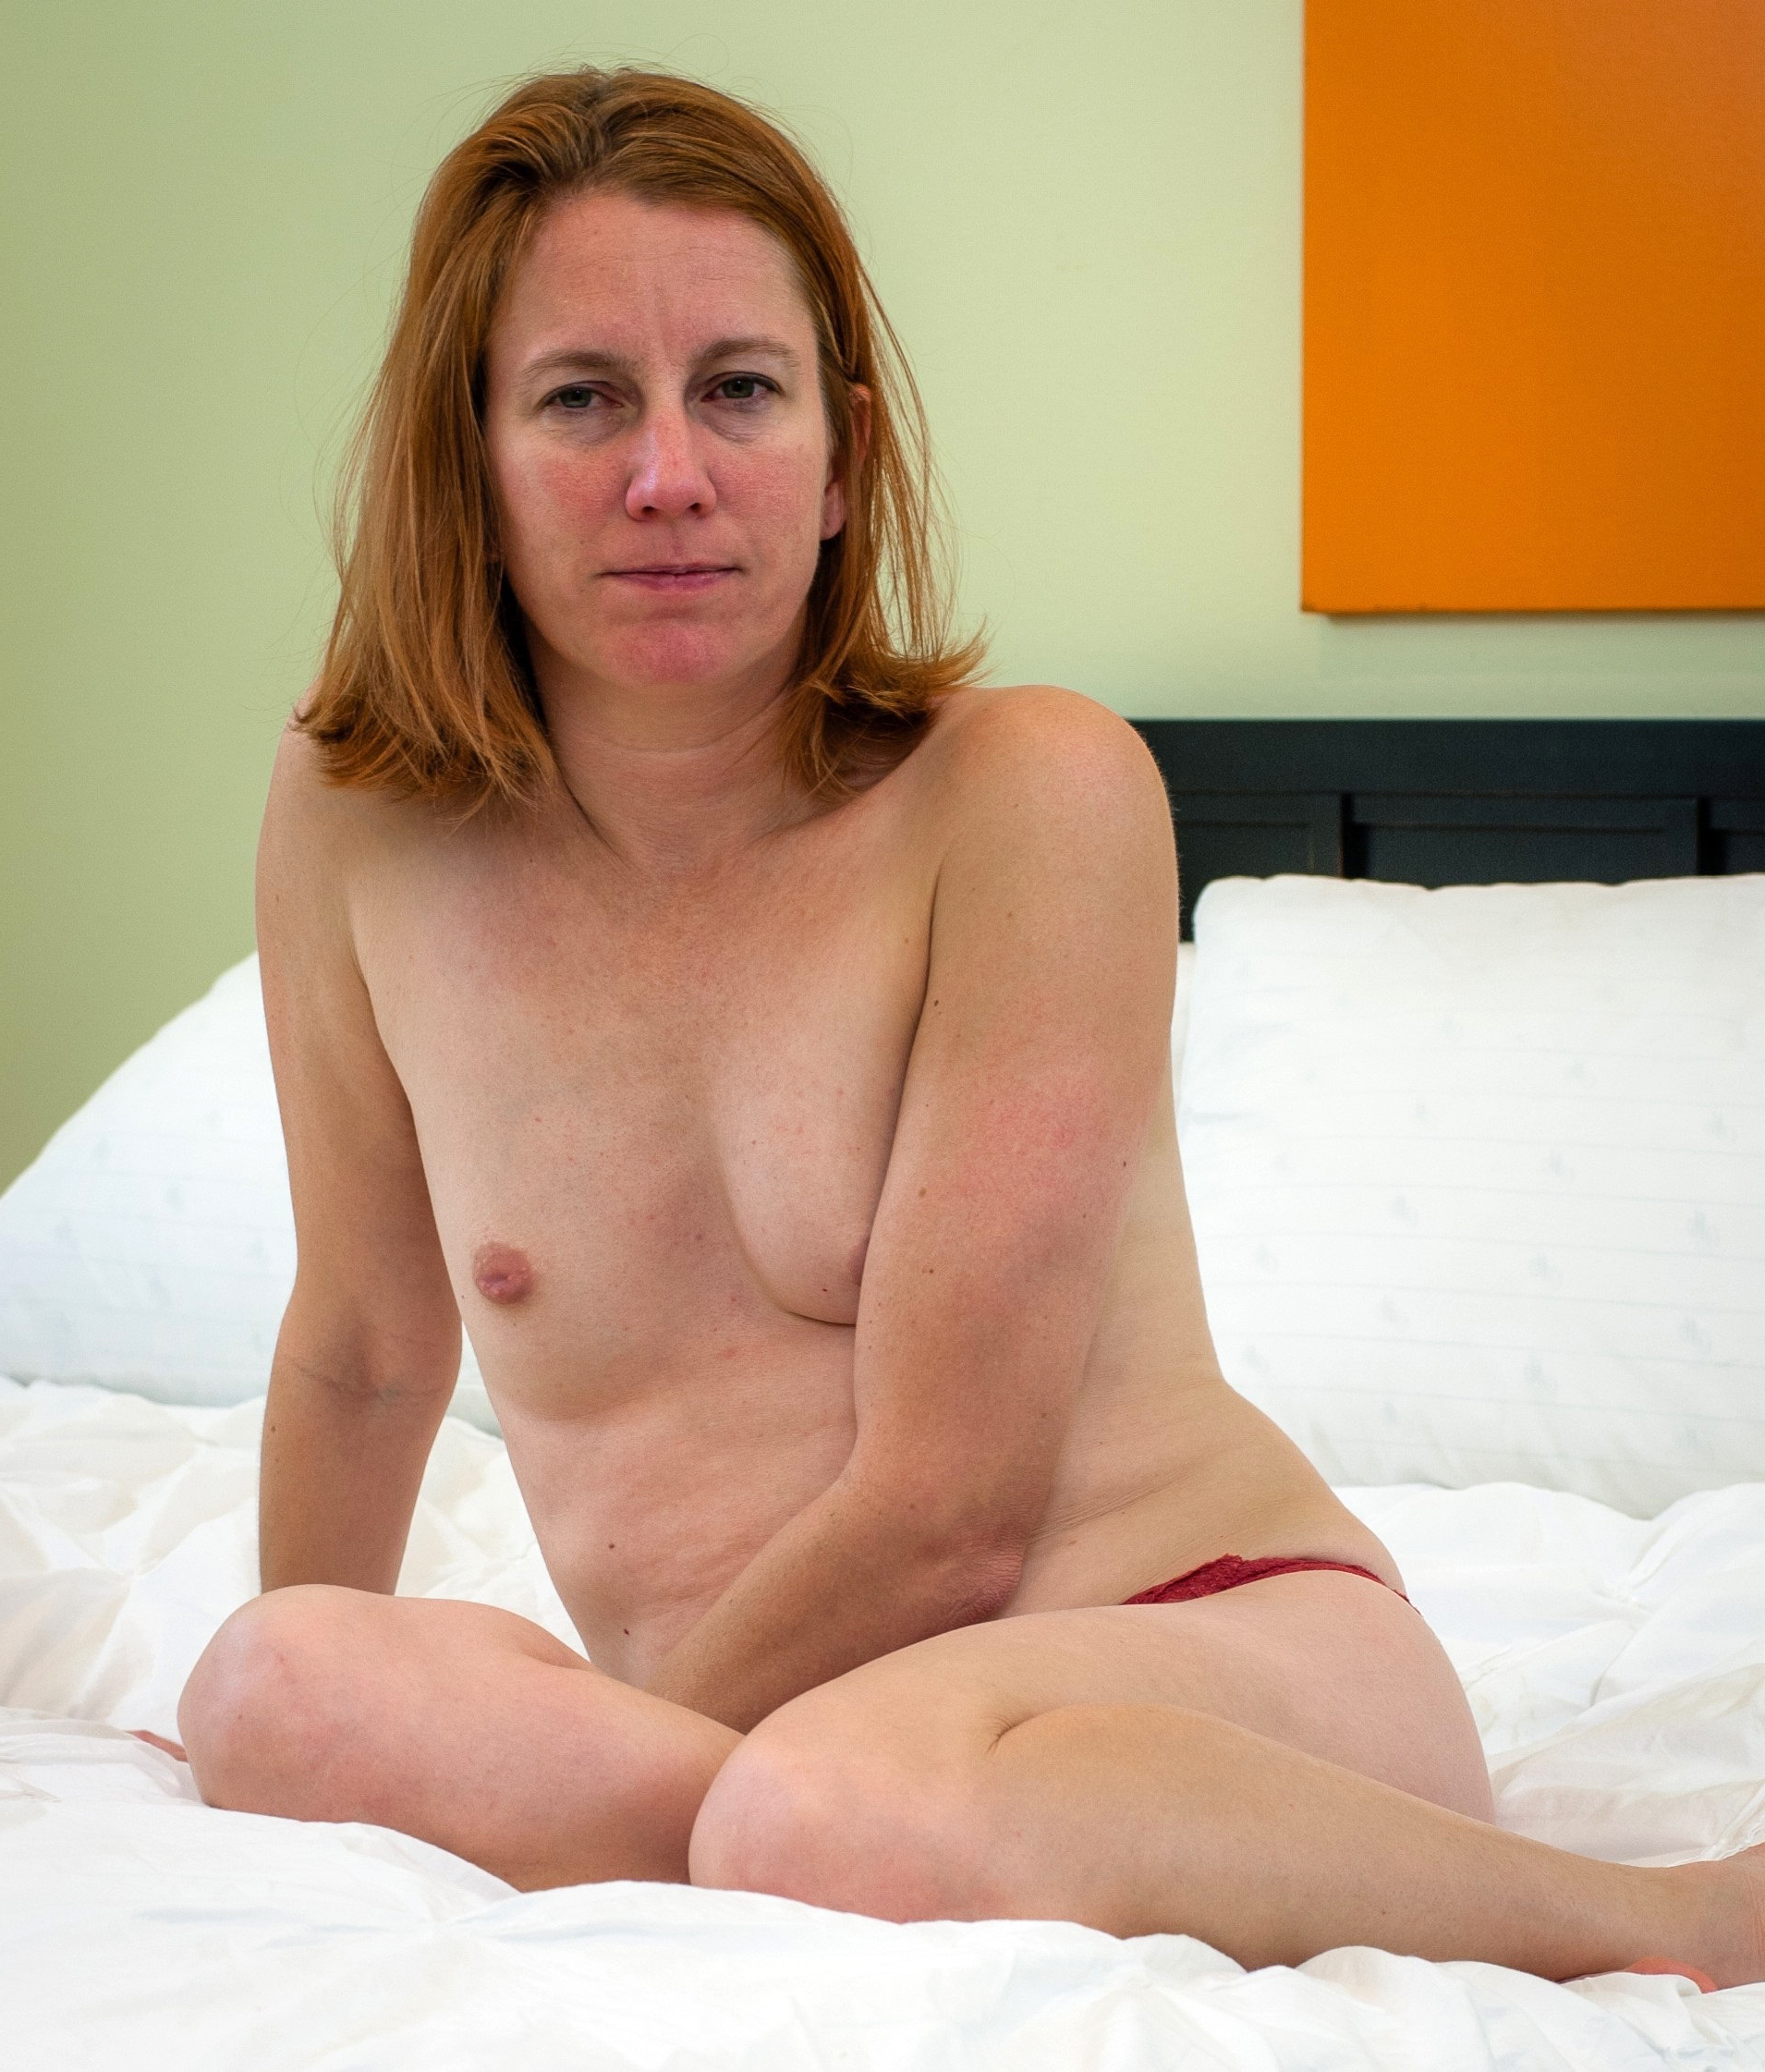 Amateur older wife private nude photoshoot